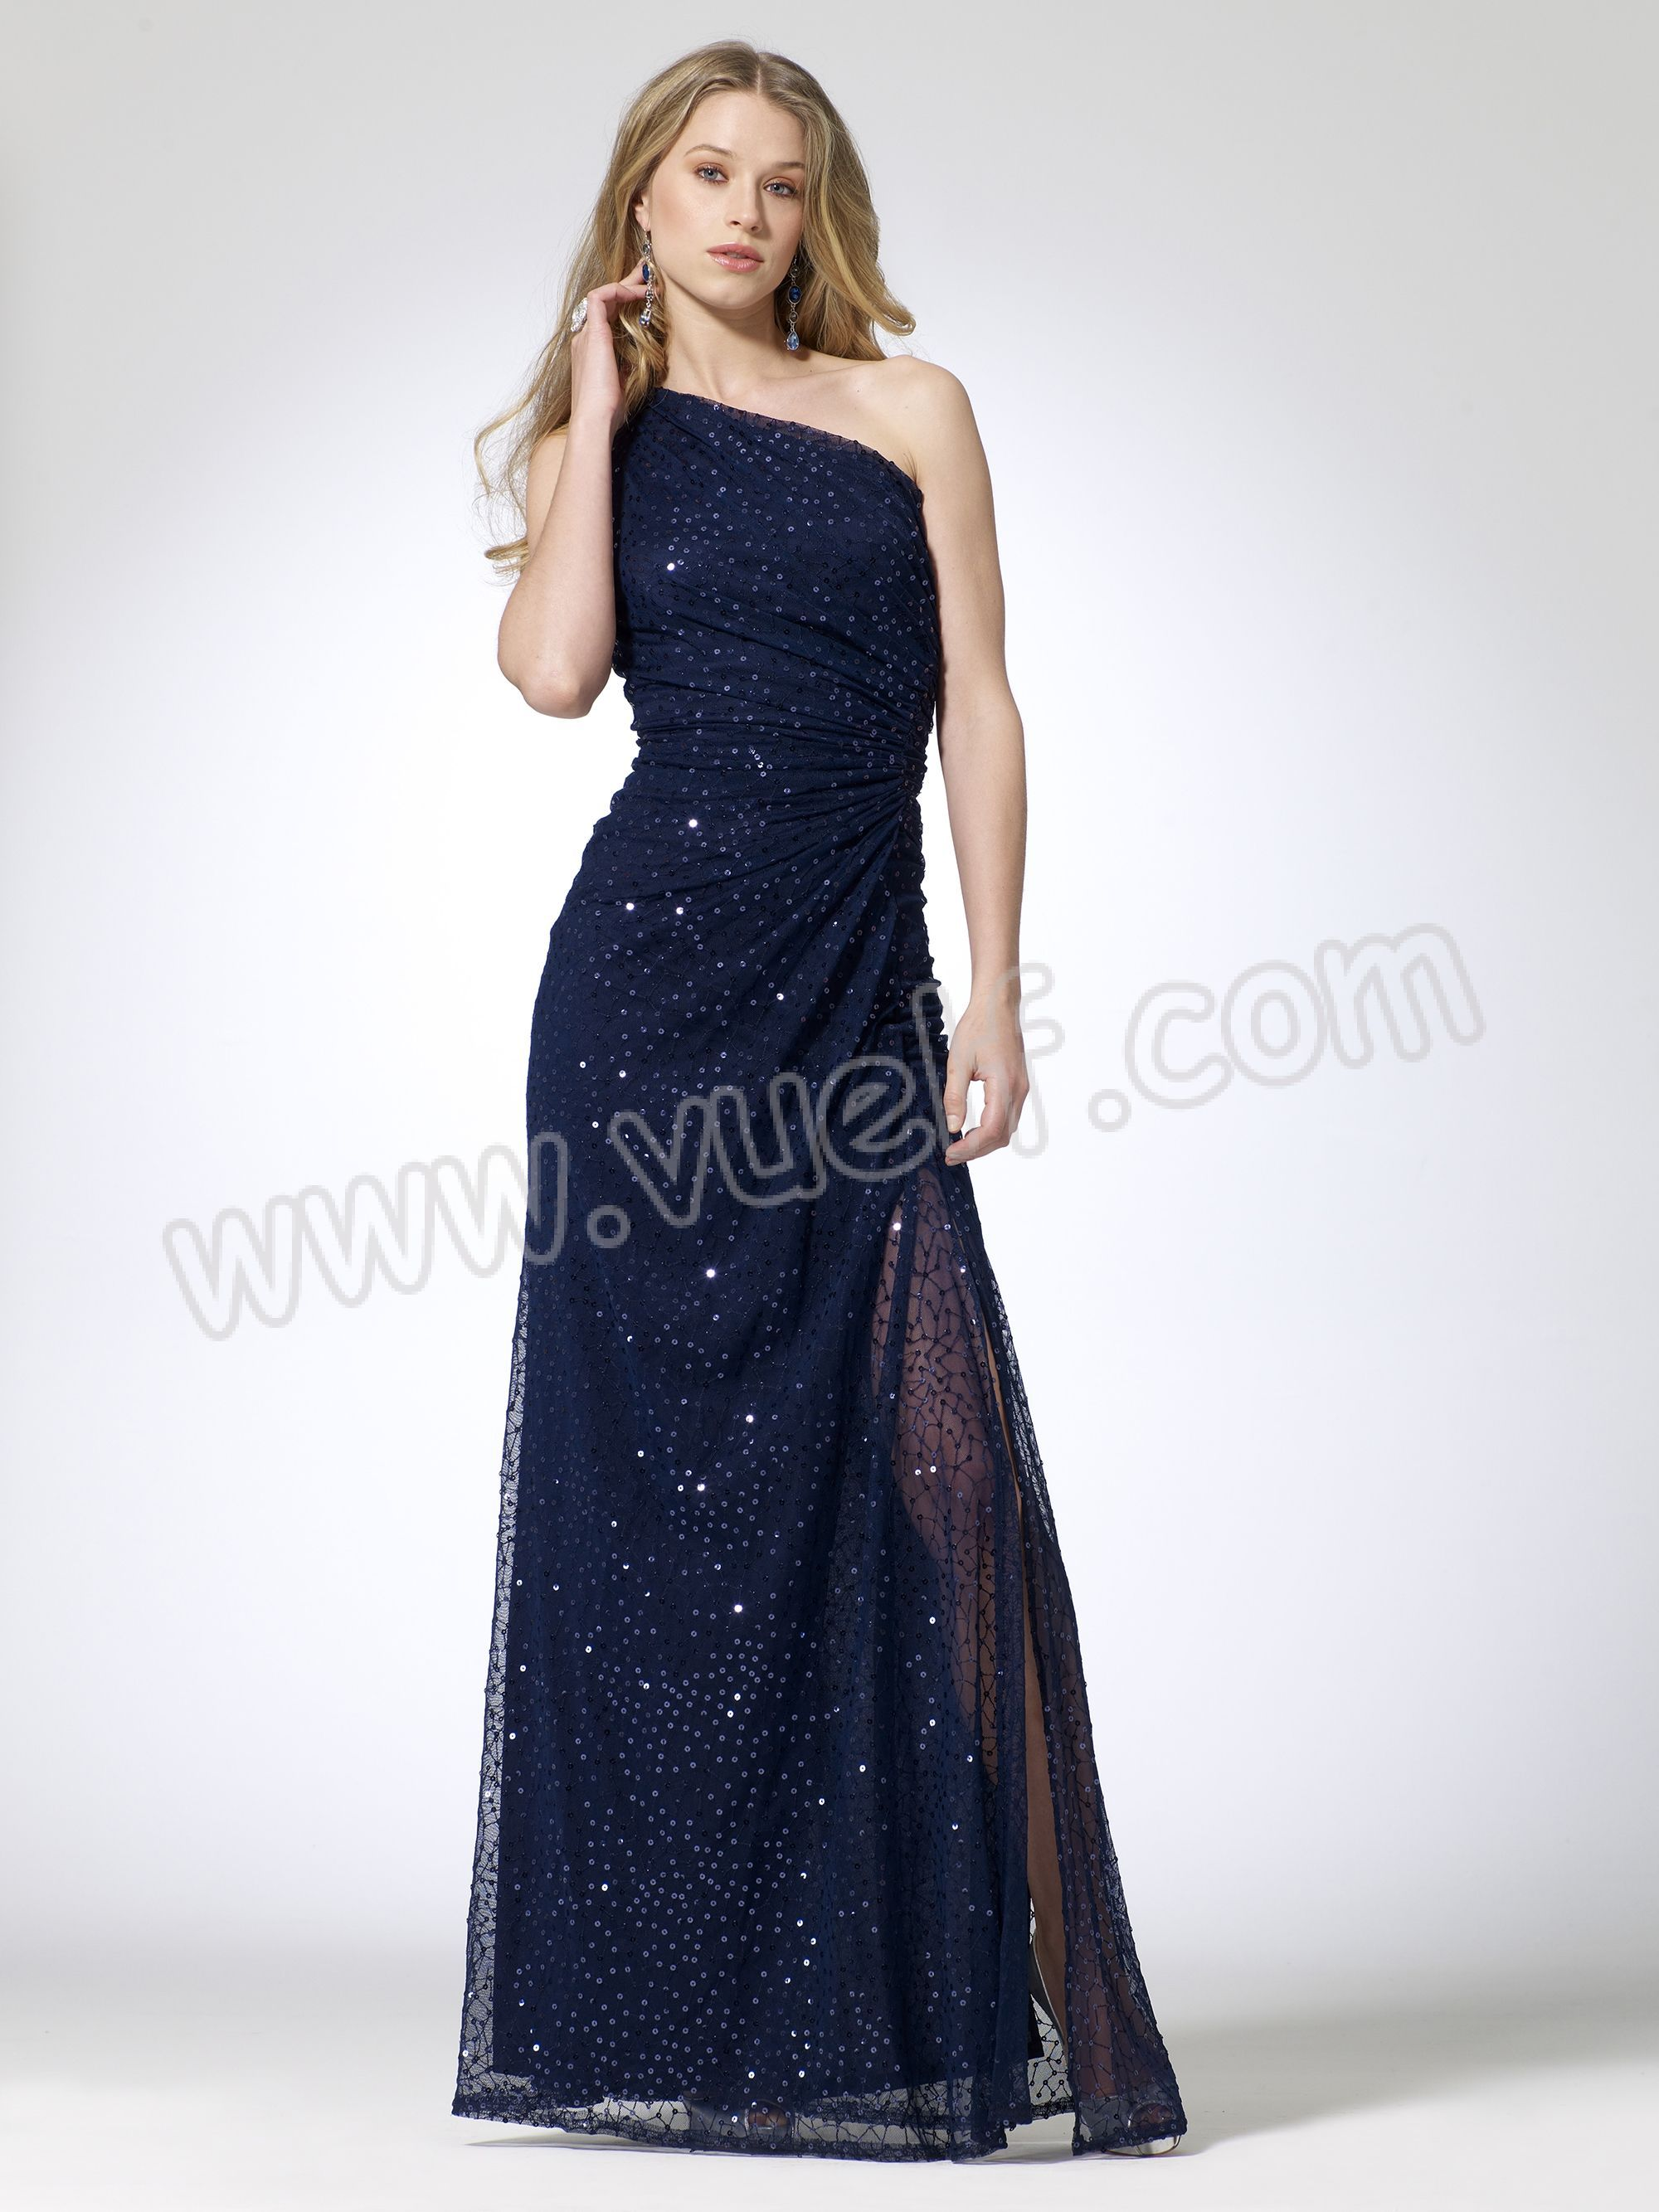 Sequin Ruched One Shoulder Gown | Prom Dresses | Pinterest | Sequins ...